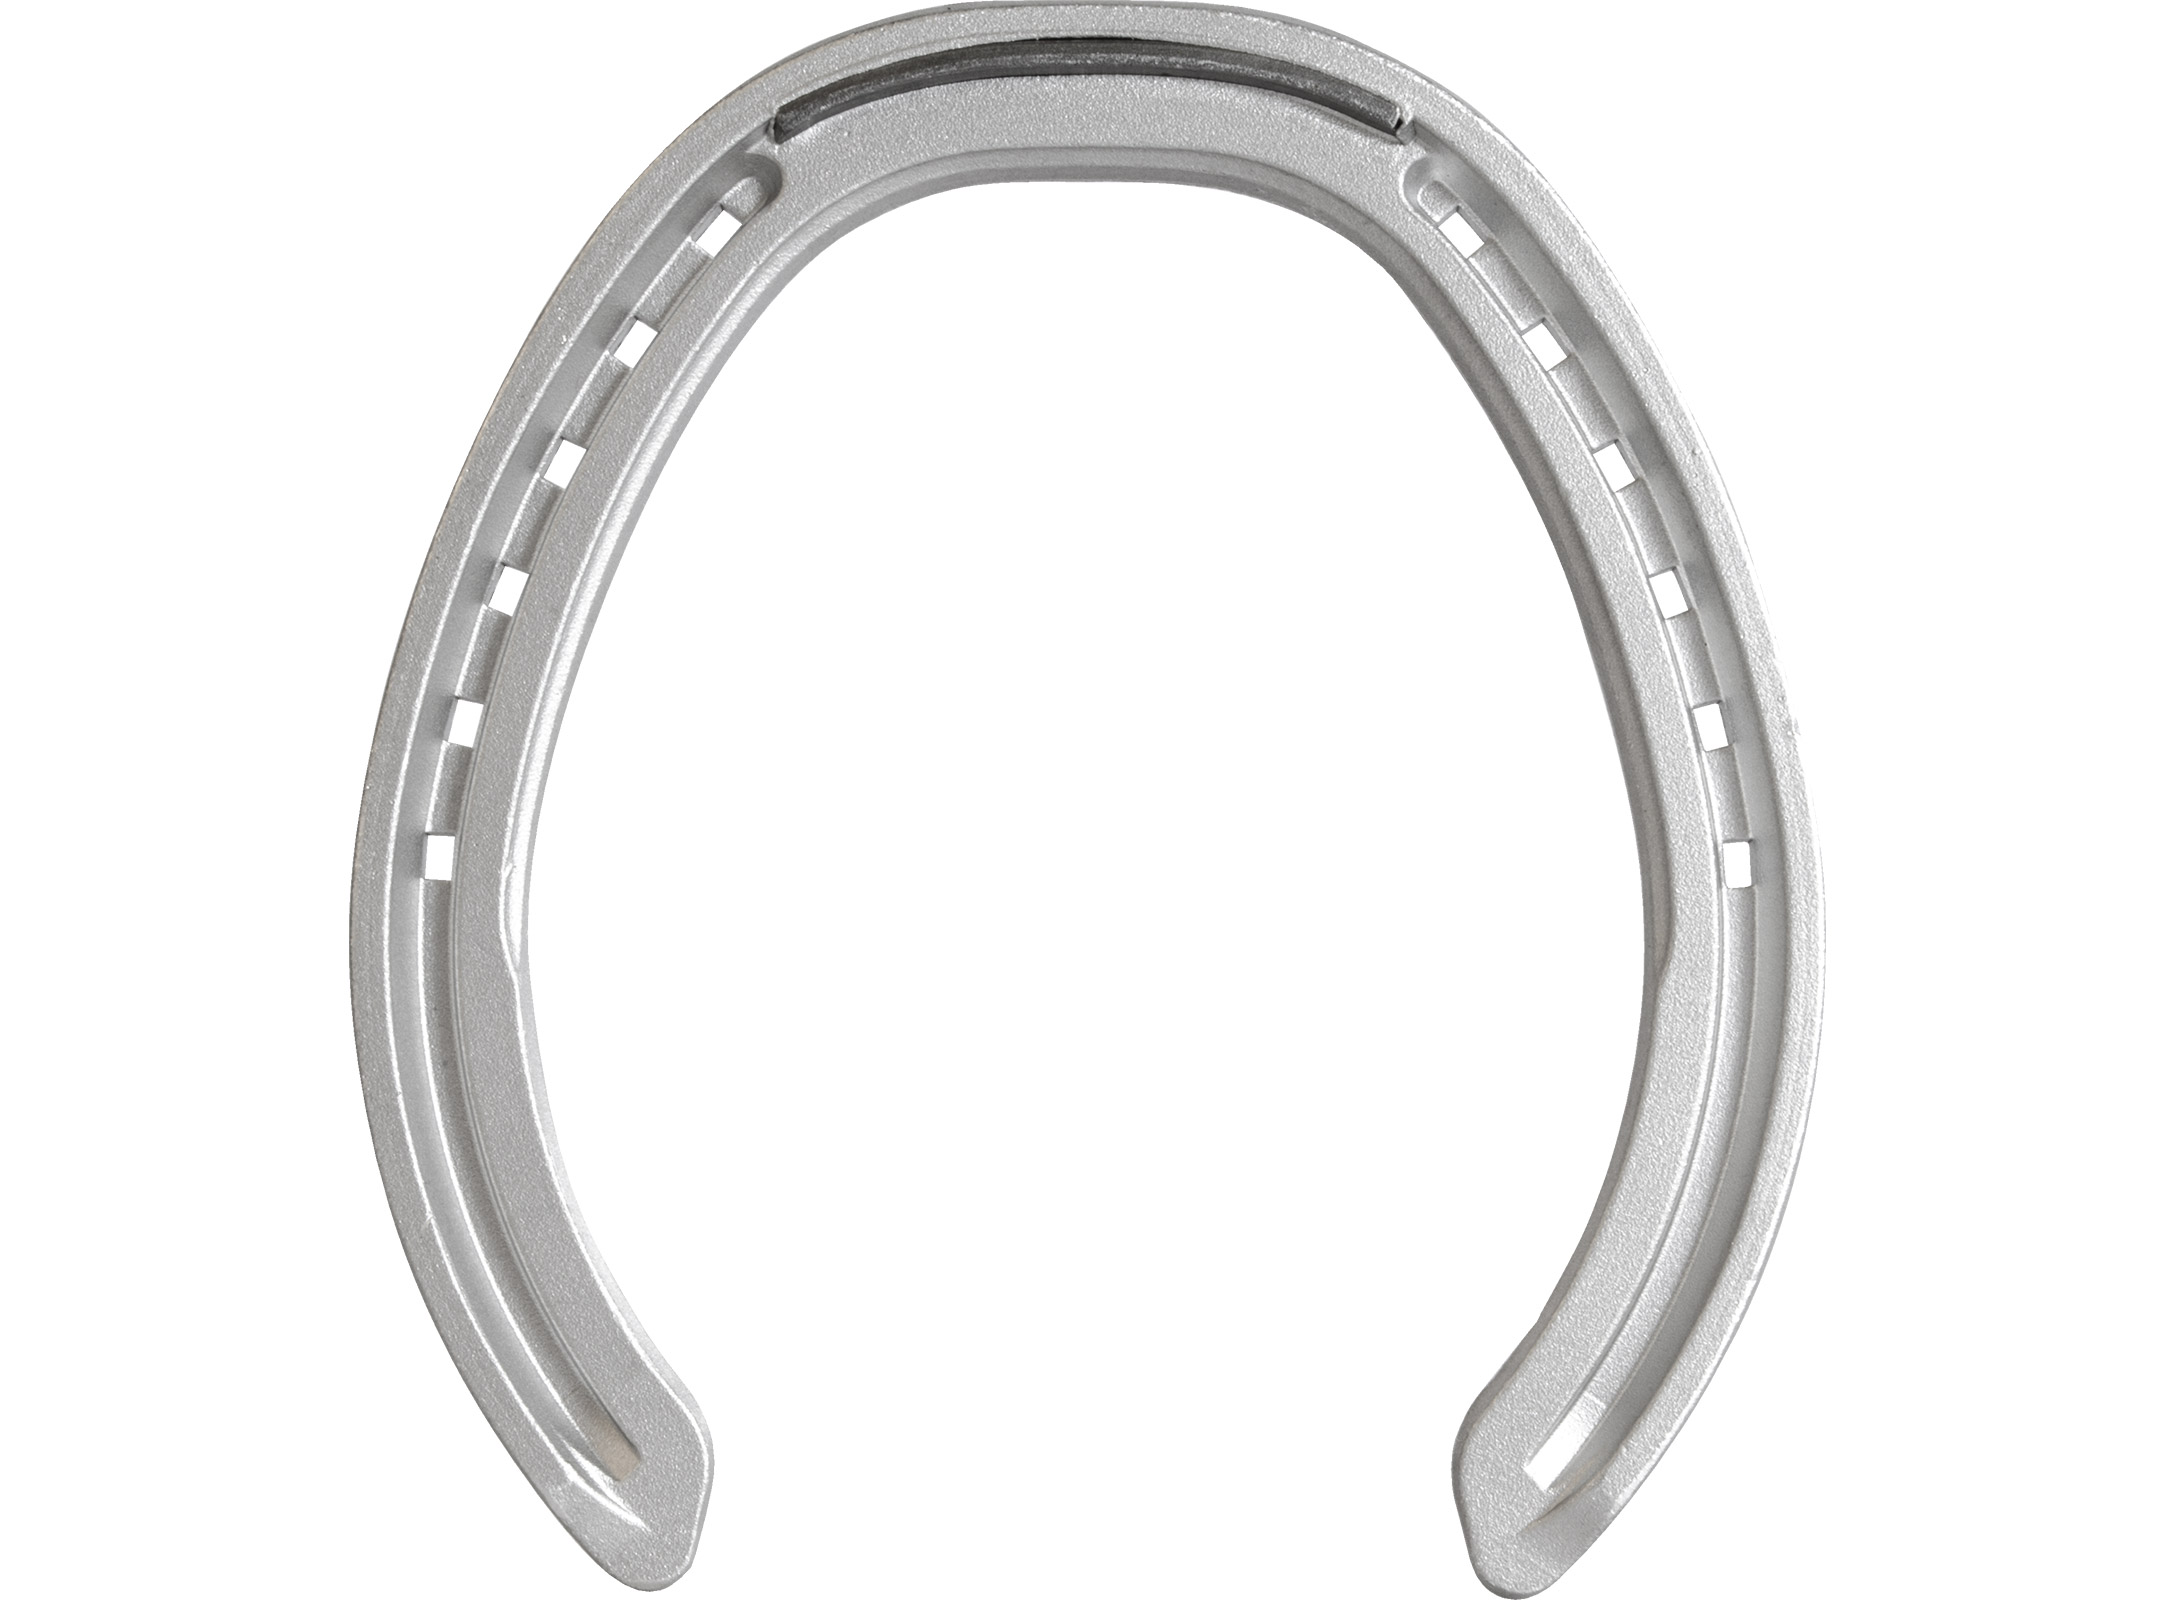 St. Croix Rapid Fullered Aluminium horseshoe, bottom view